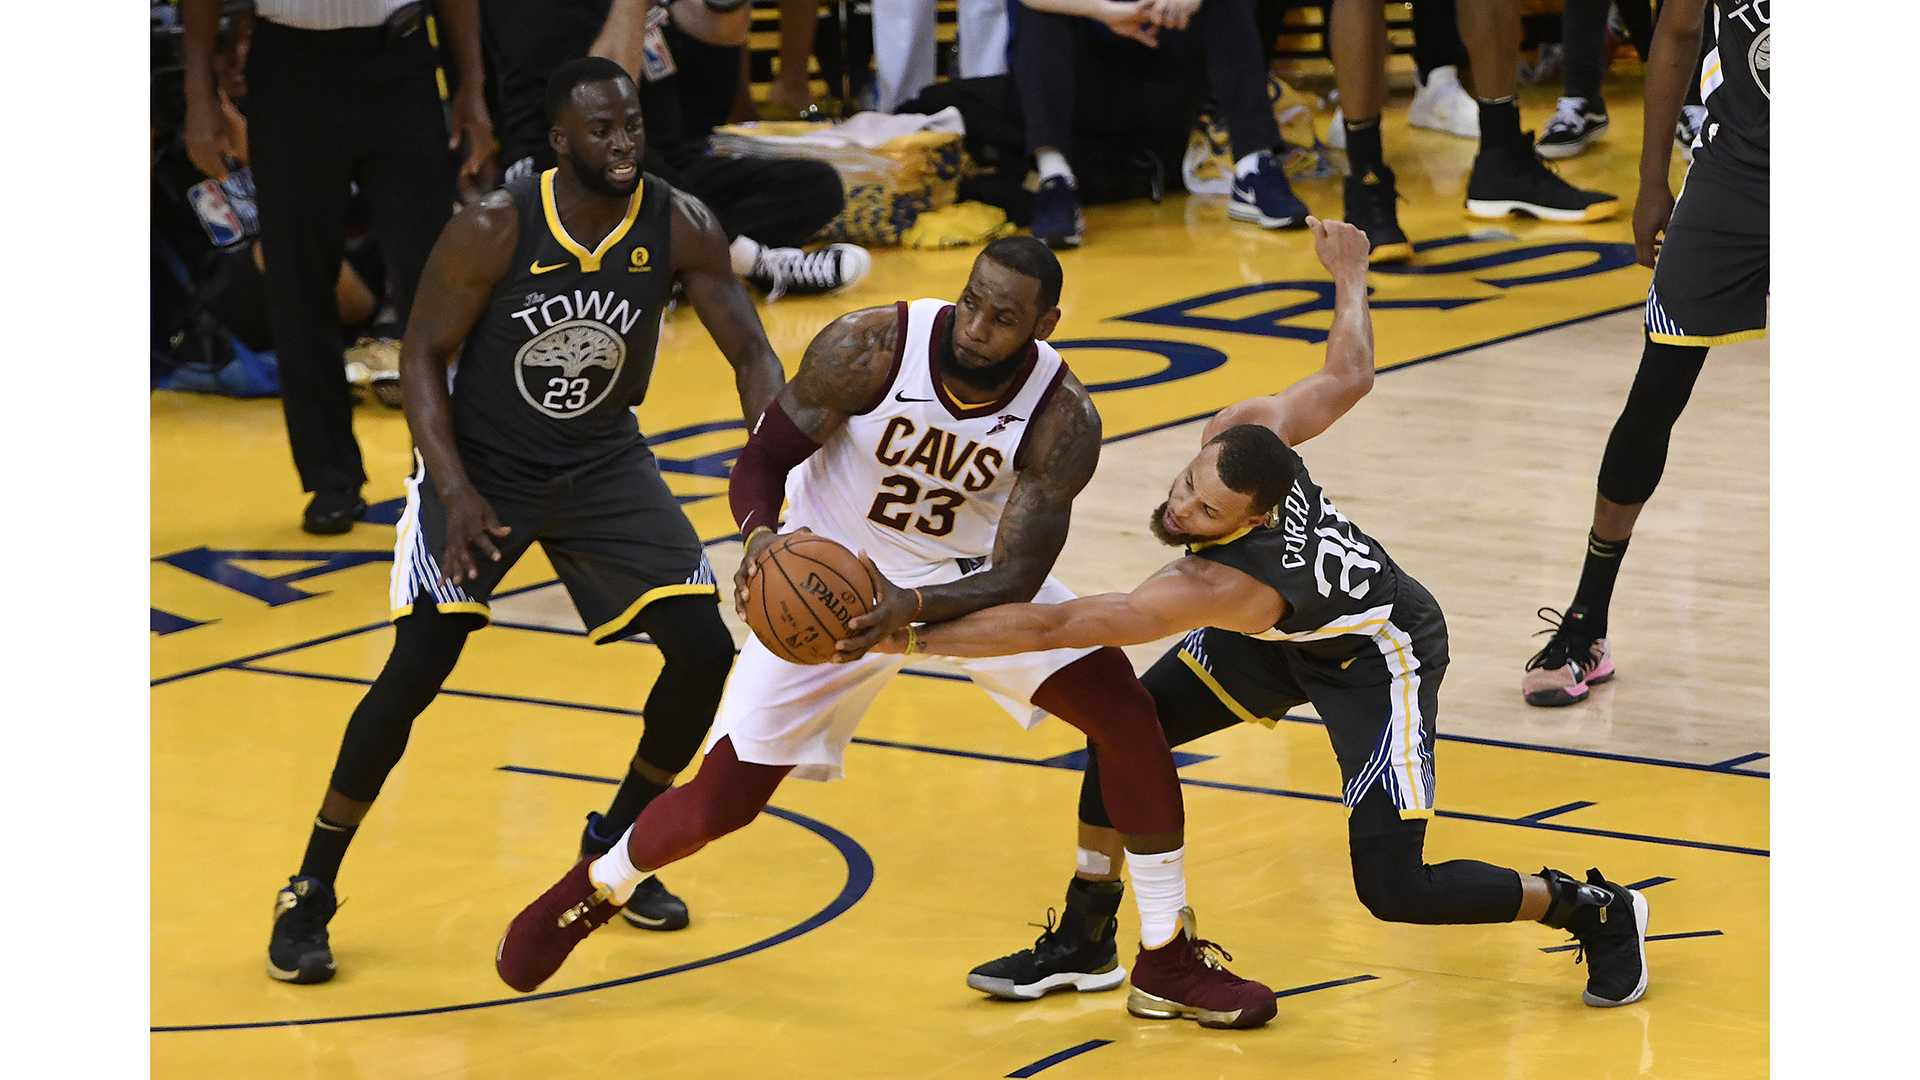 Draymond Green (23) and Stephen Curry (30) guard LeBron James (23) during the fourth quarter of Game 2 of the NBA Finals on Sunday, June 3, 2018 at Oracle Arena, in Oakland, Calif. The Golden State Warriors defeated the Cleveland Cavaliers, 122-103. (Jose Carlos Fajardo/Bay Area News Group/TNS)